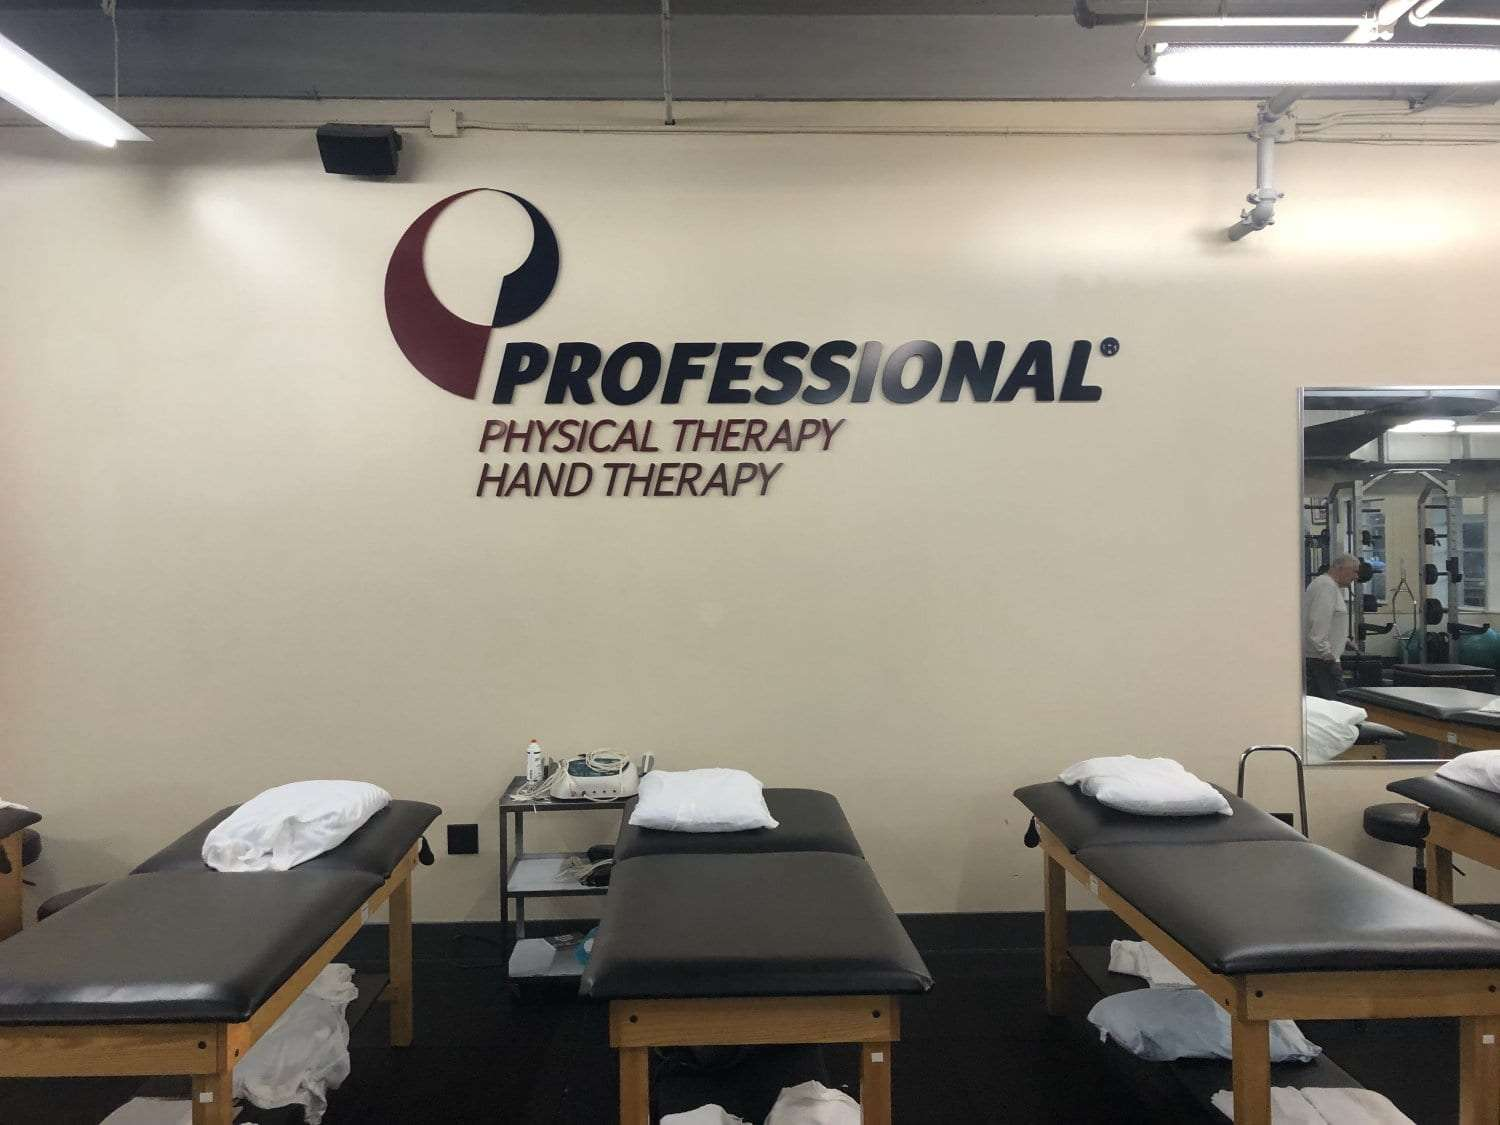 Here is an image of three stretch beds under the Professional Physical Therapy Hand Therapy sign at our clinic in Melville, Long Island in Suffolk County, New York.